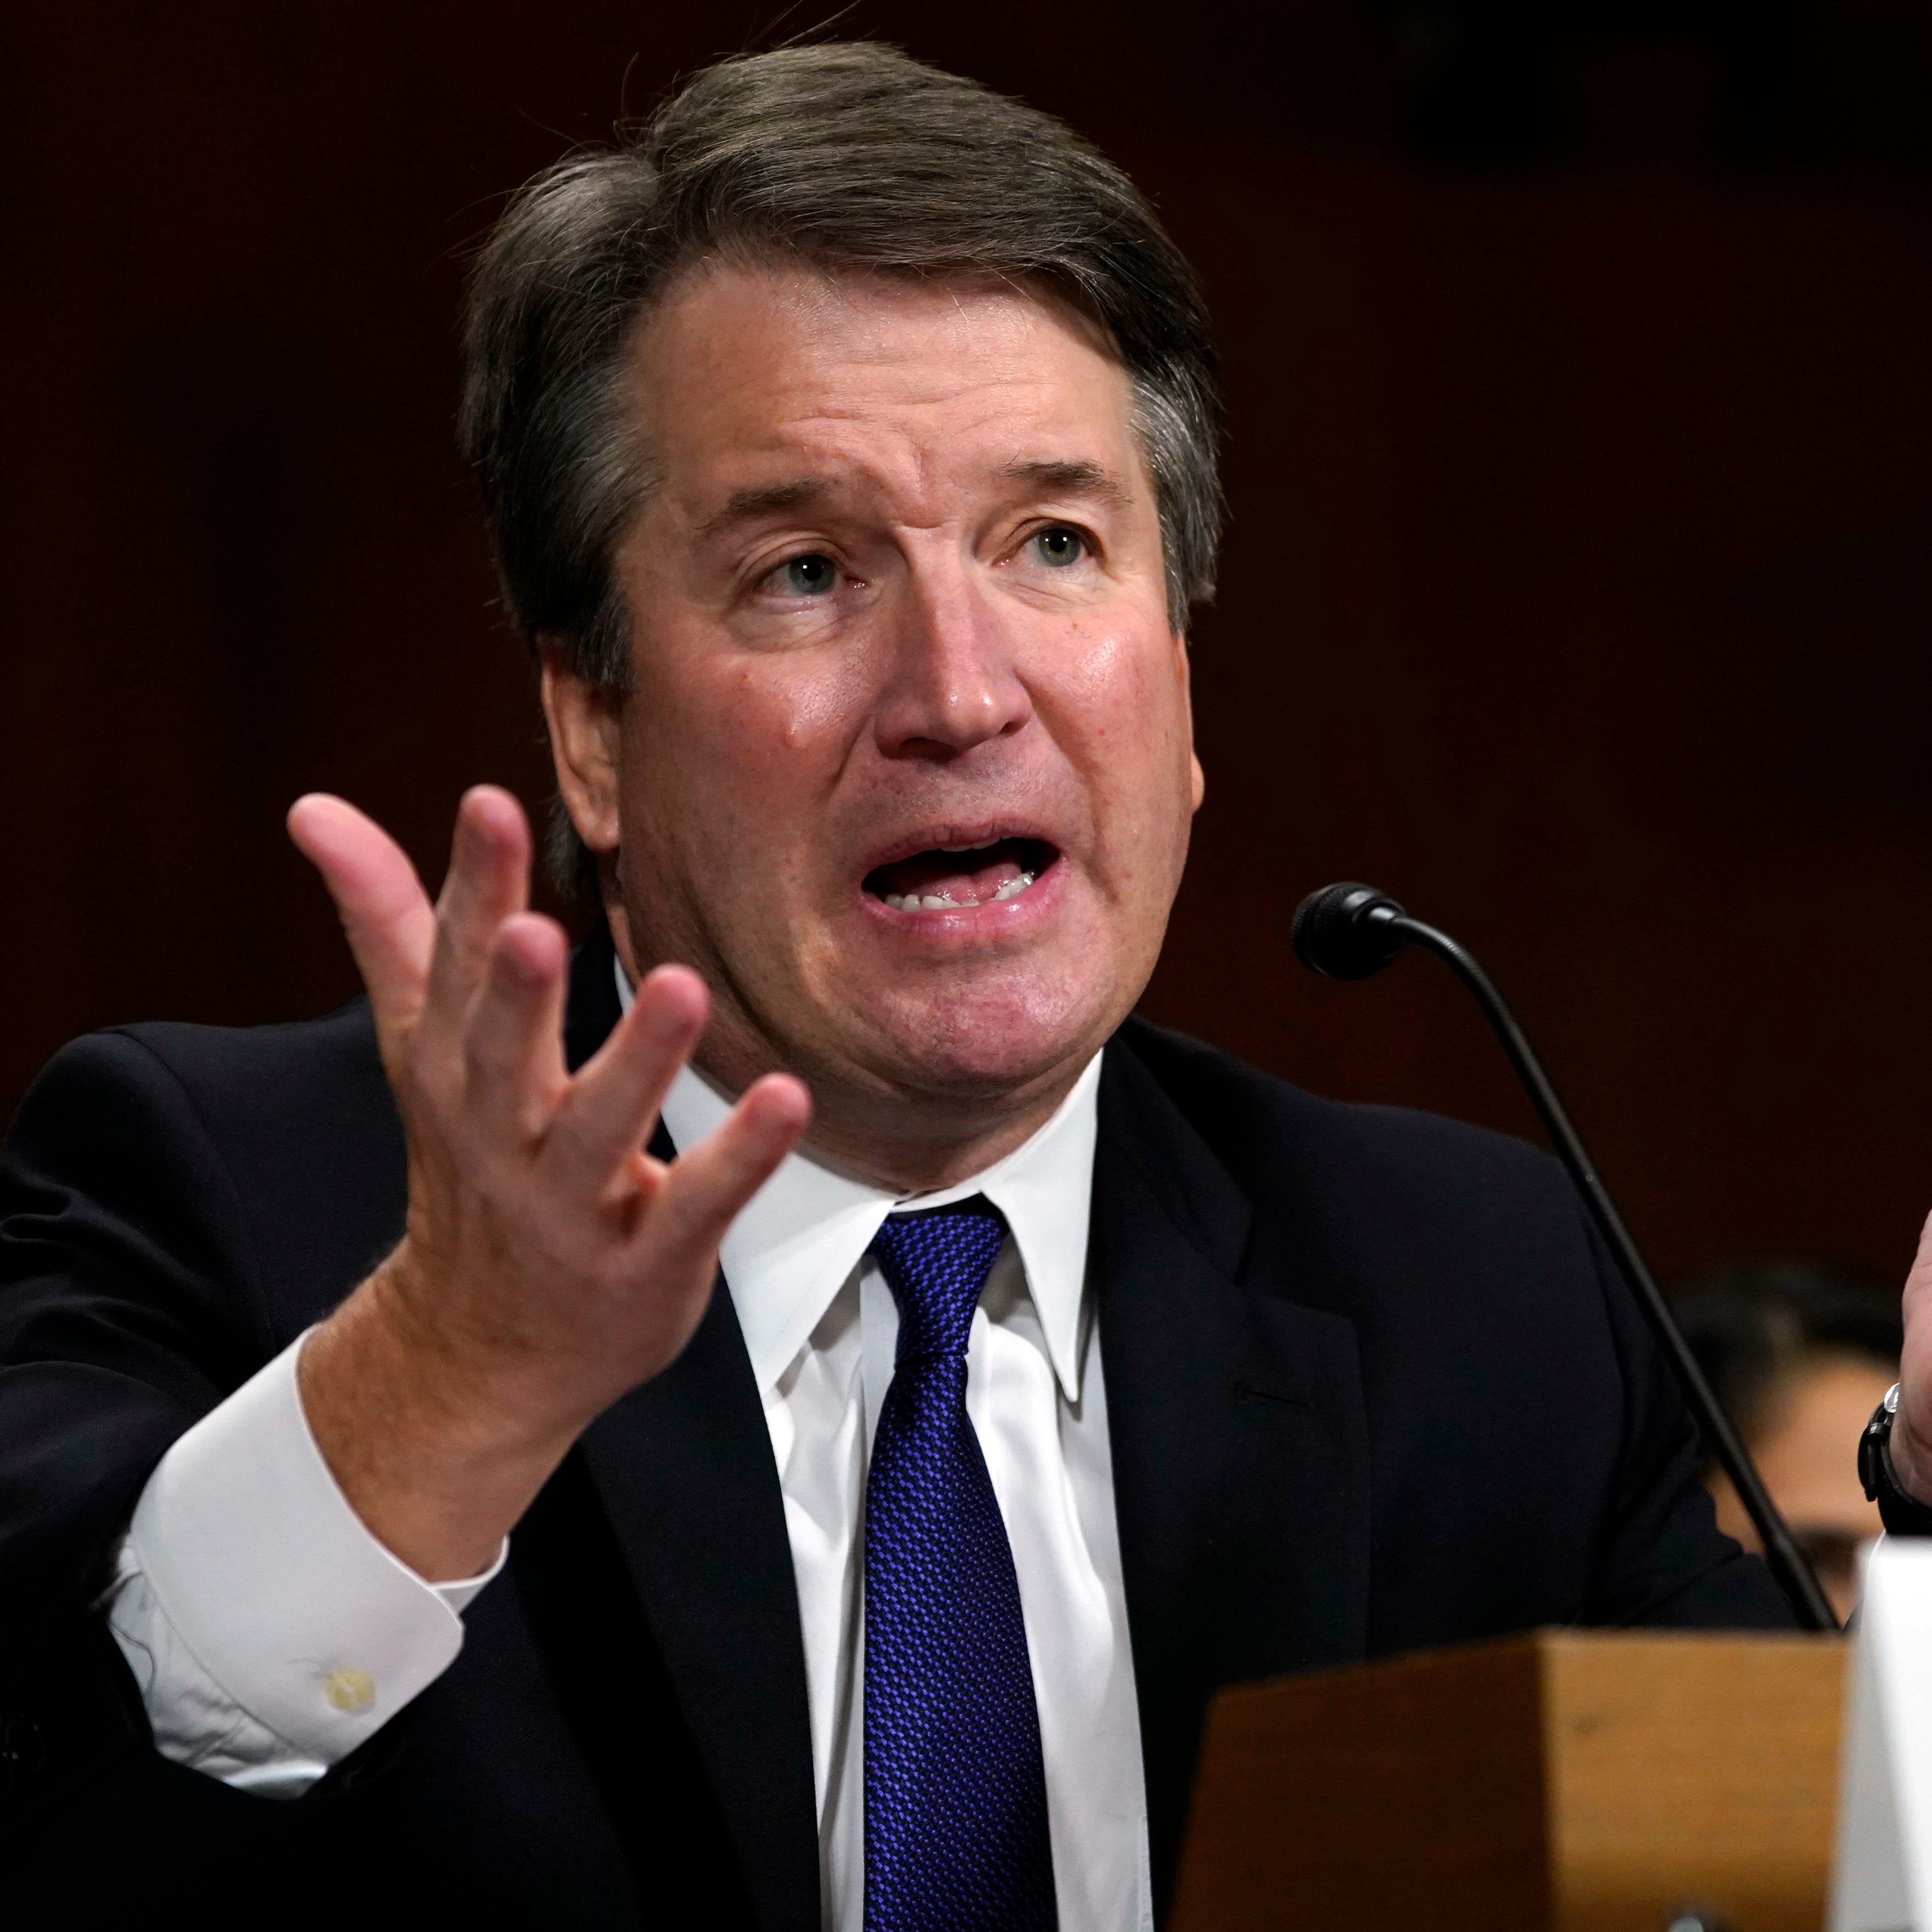 Then Supreme Court nominee Judge Brett Kavanaugh testifies before the Senate Judiciary Committee on Capitol Hill in Washington, on Sept. 27, 2018.